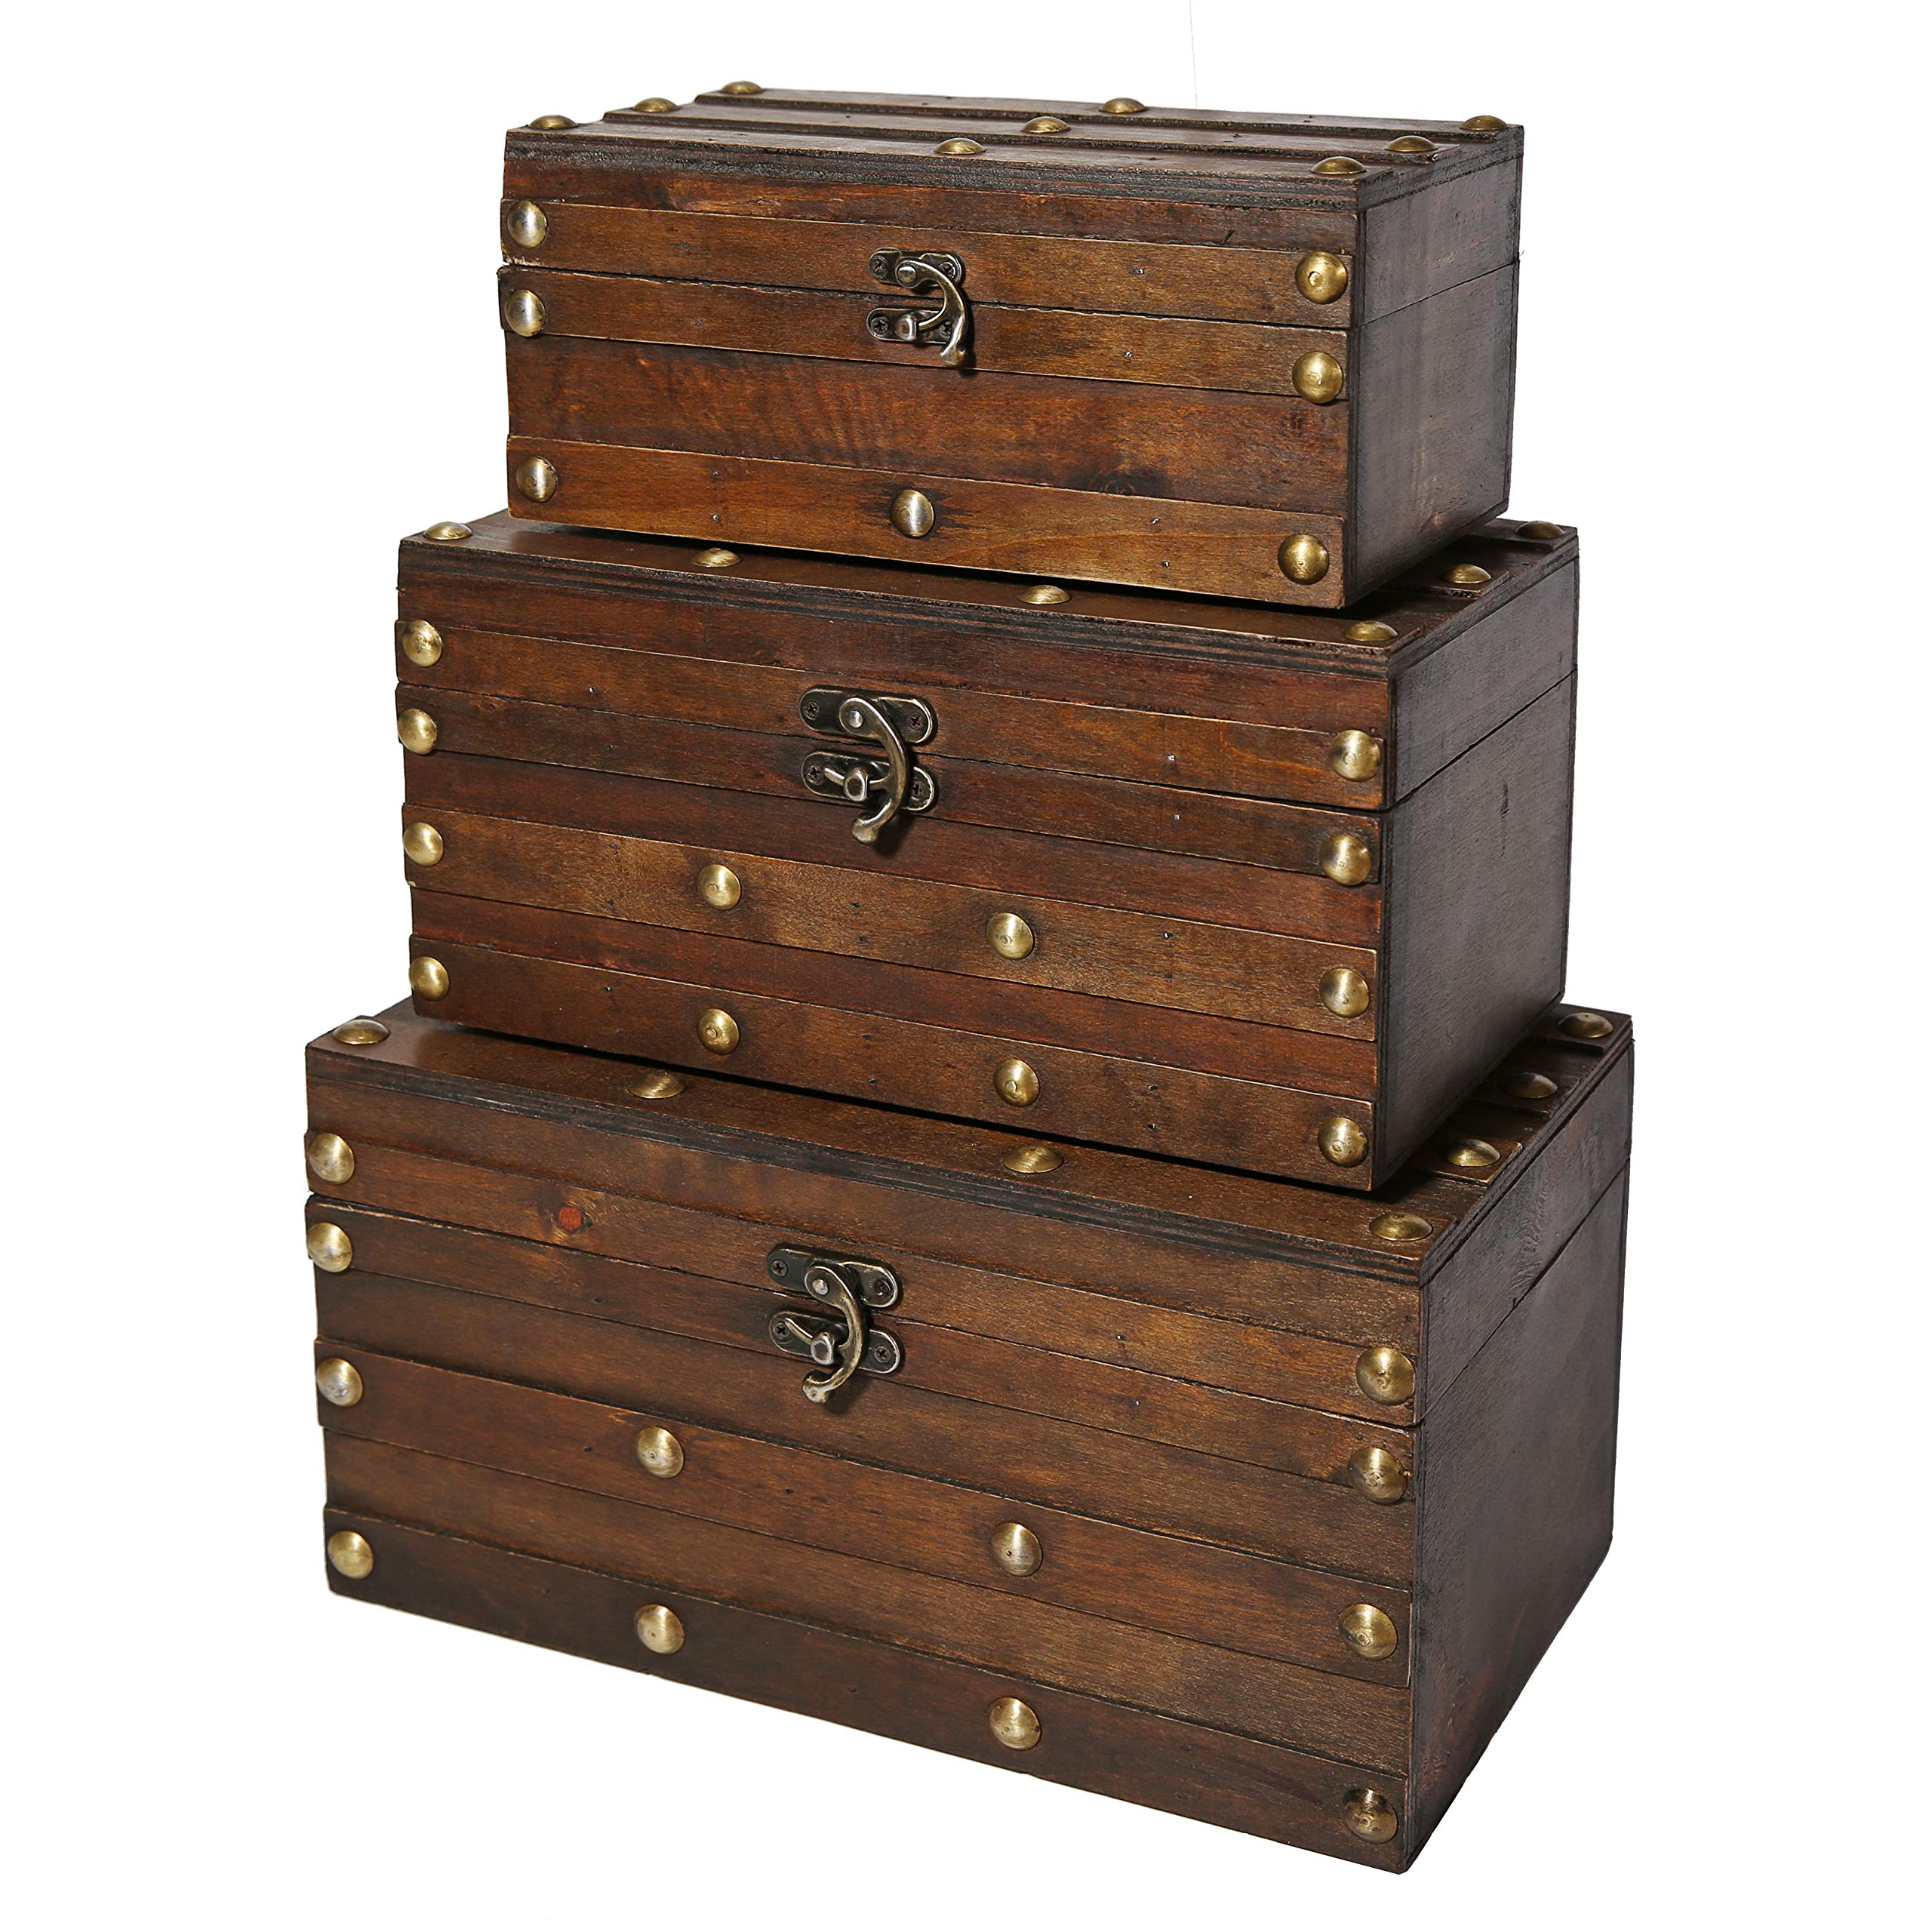 Soul & Lane Monahan Wooden Trunk Chests (Set of 3) | Decorative Treasure Storage Boxes for Keepsake Toys Photos Memories